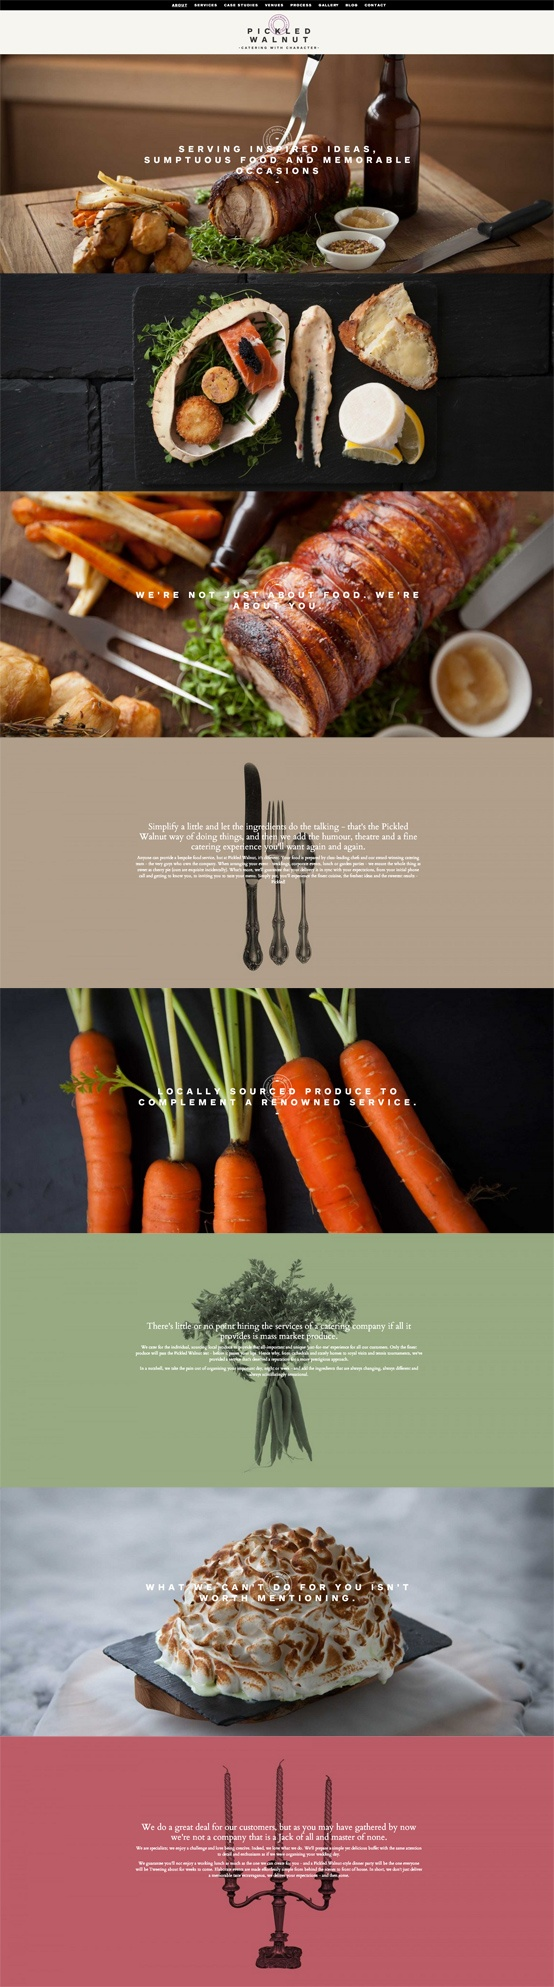 http://www.pickledwalnutcatering.co.uk/   #webdesign #food #catering #design #photography #cooking